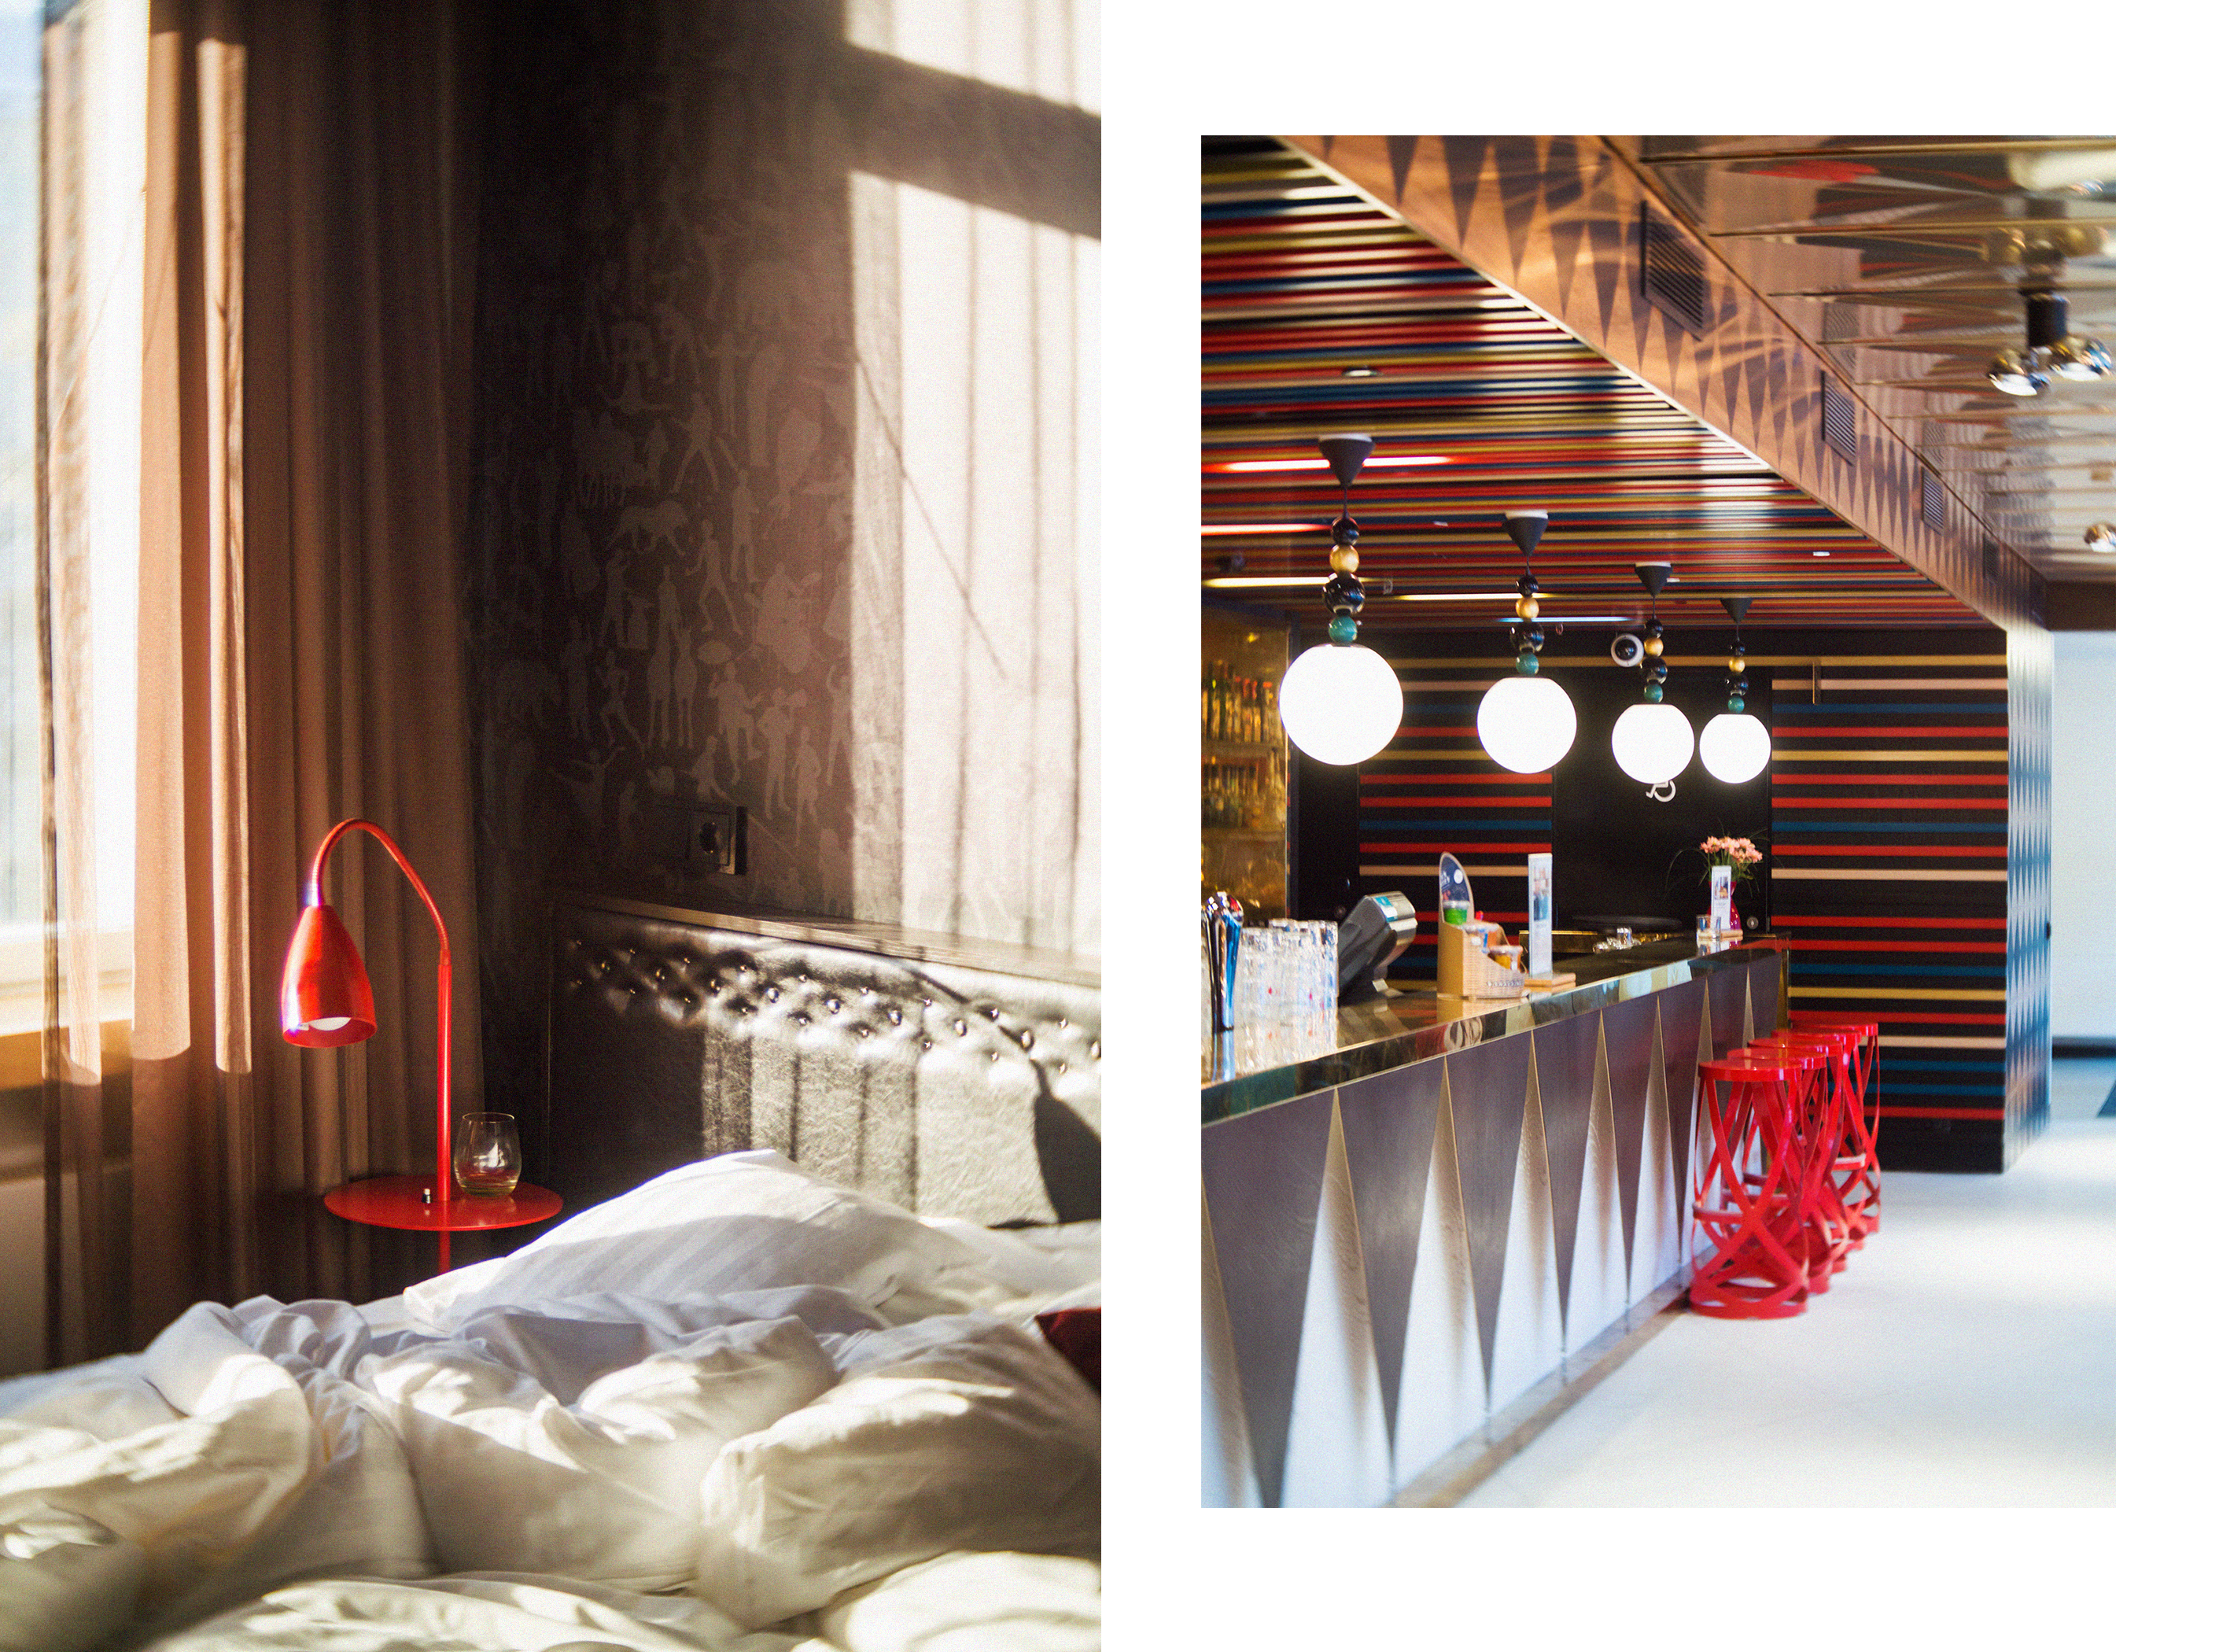 helsinki-hotel-blogger-recommendation-scandic-paasi